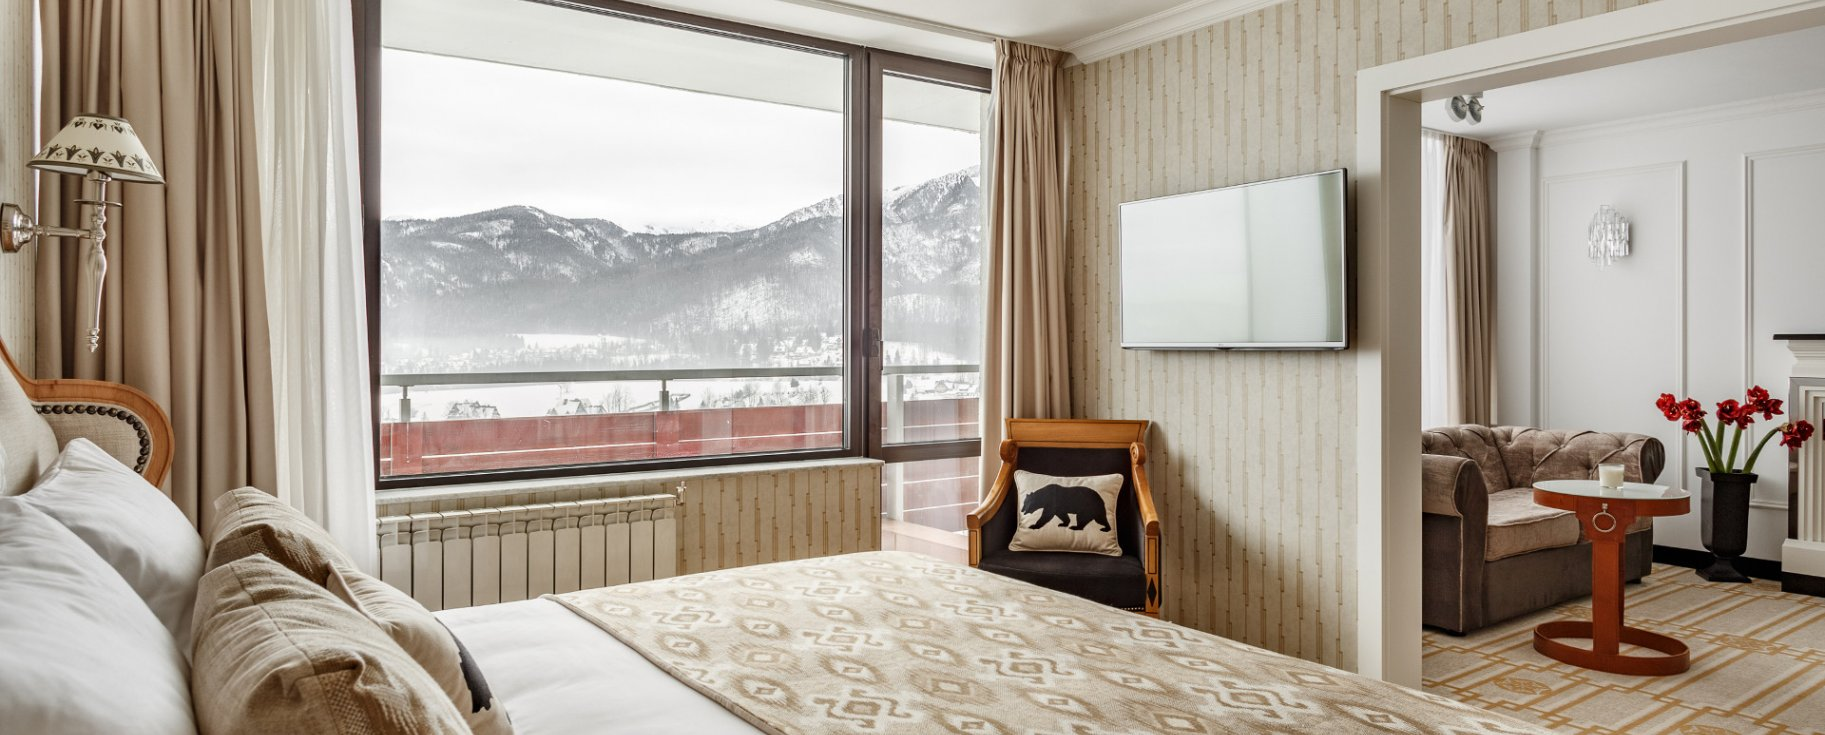 Suite with balcony overlooking the mountains